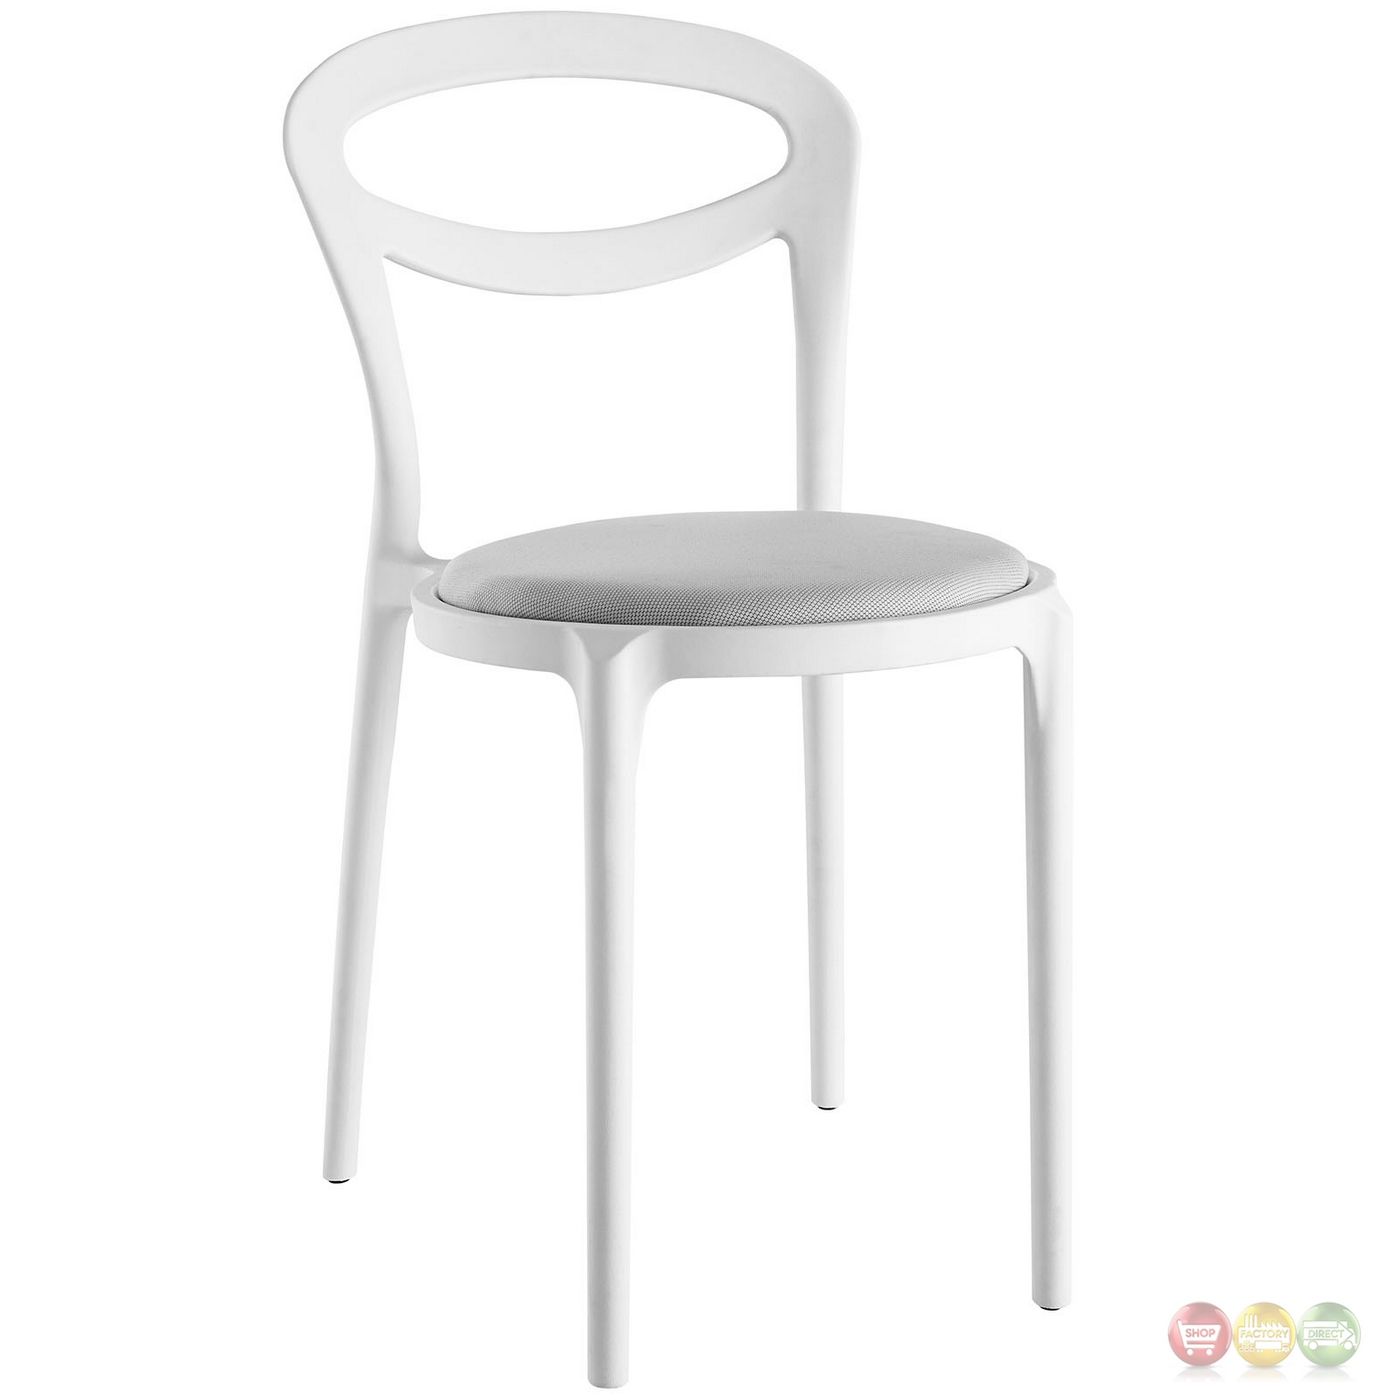 White Plastic Modern Chairs Set Of 4 Assist Modern Molded Plastic Side Chair W Padded